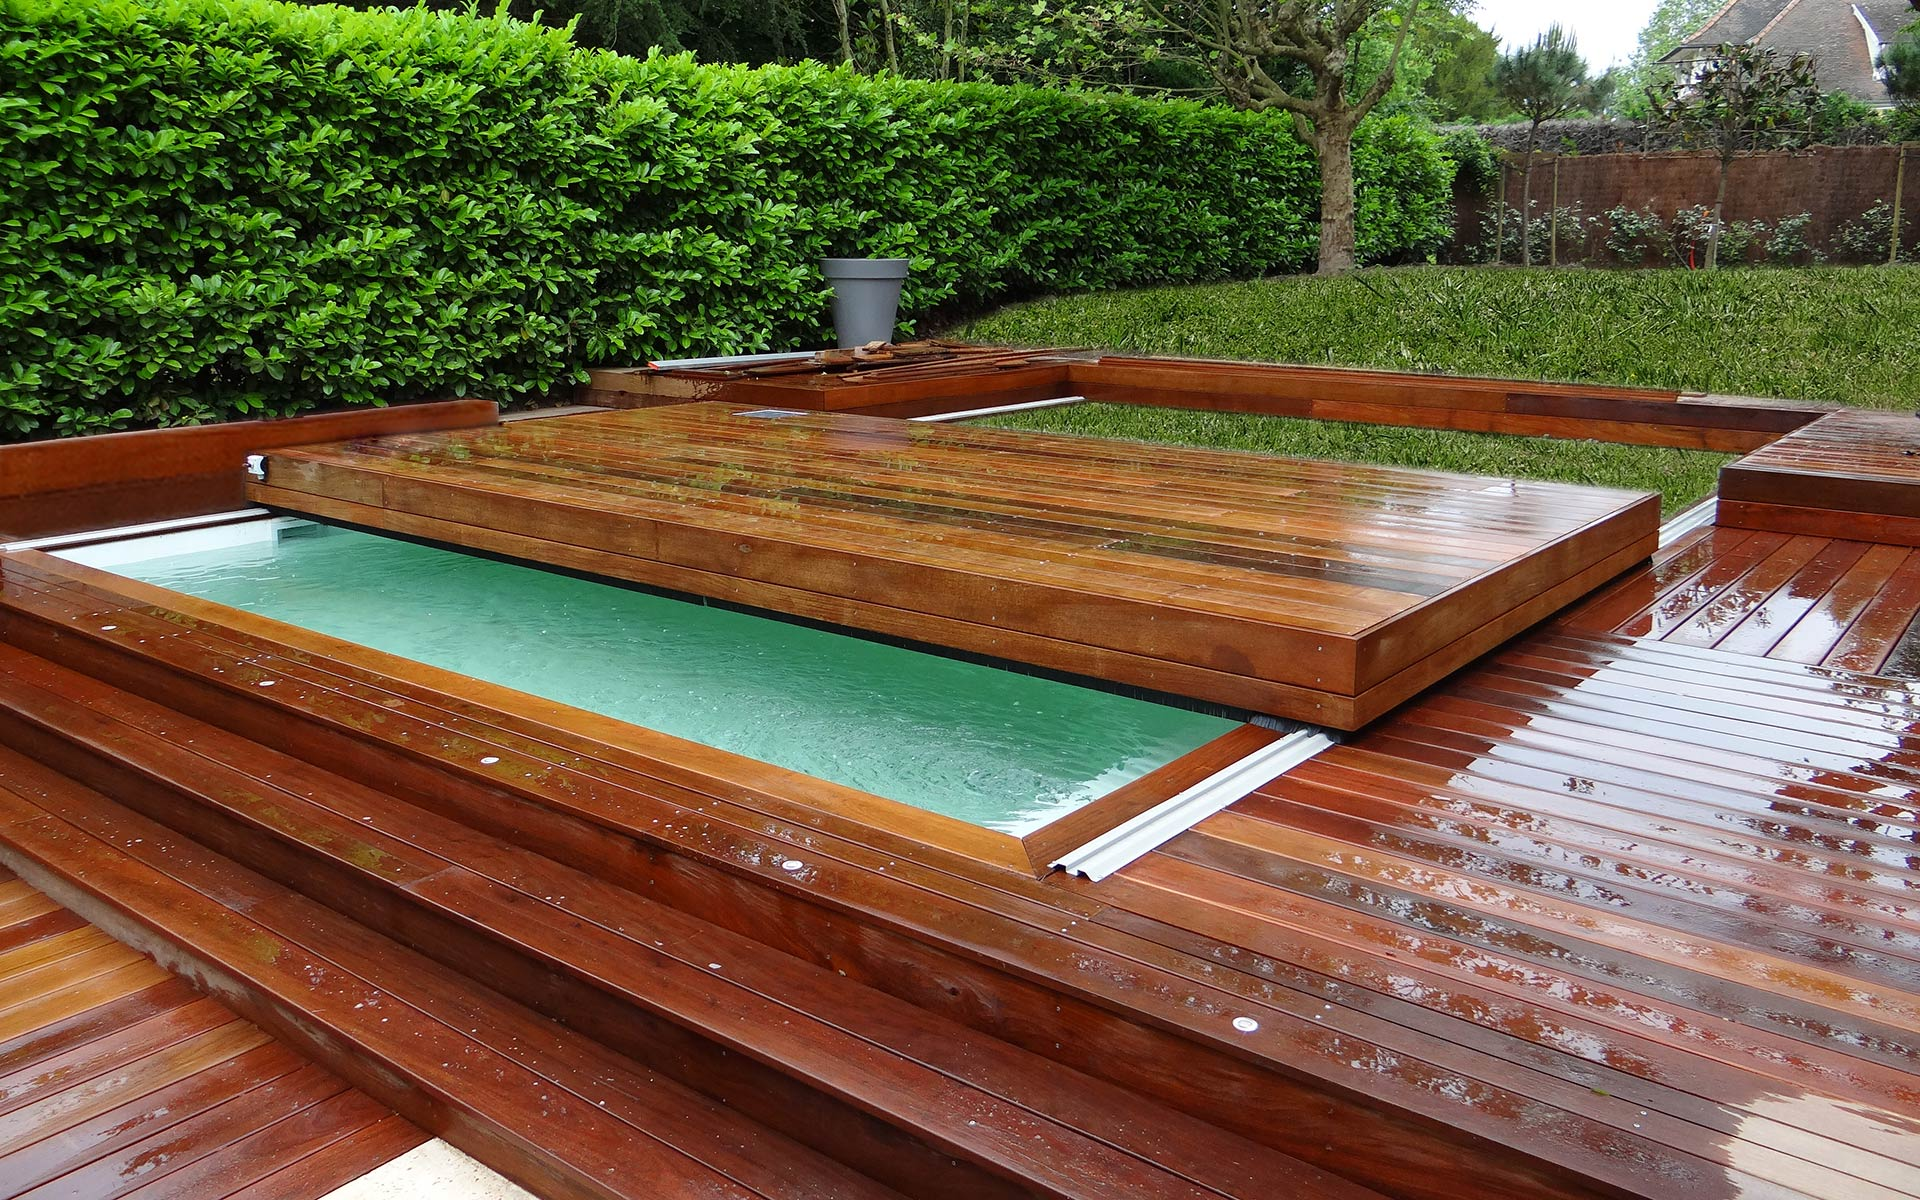 Terrasse Pour Piscine Terrasse Mobile Pour Piscine - Hidden Pool - Fond Mobile